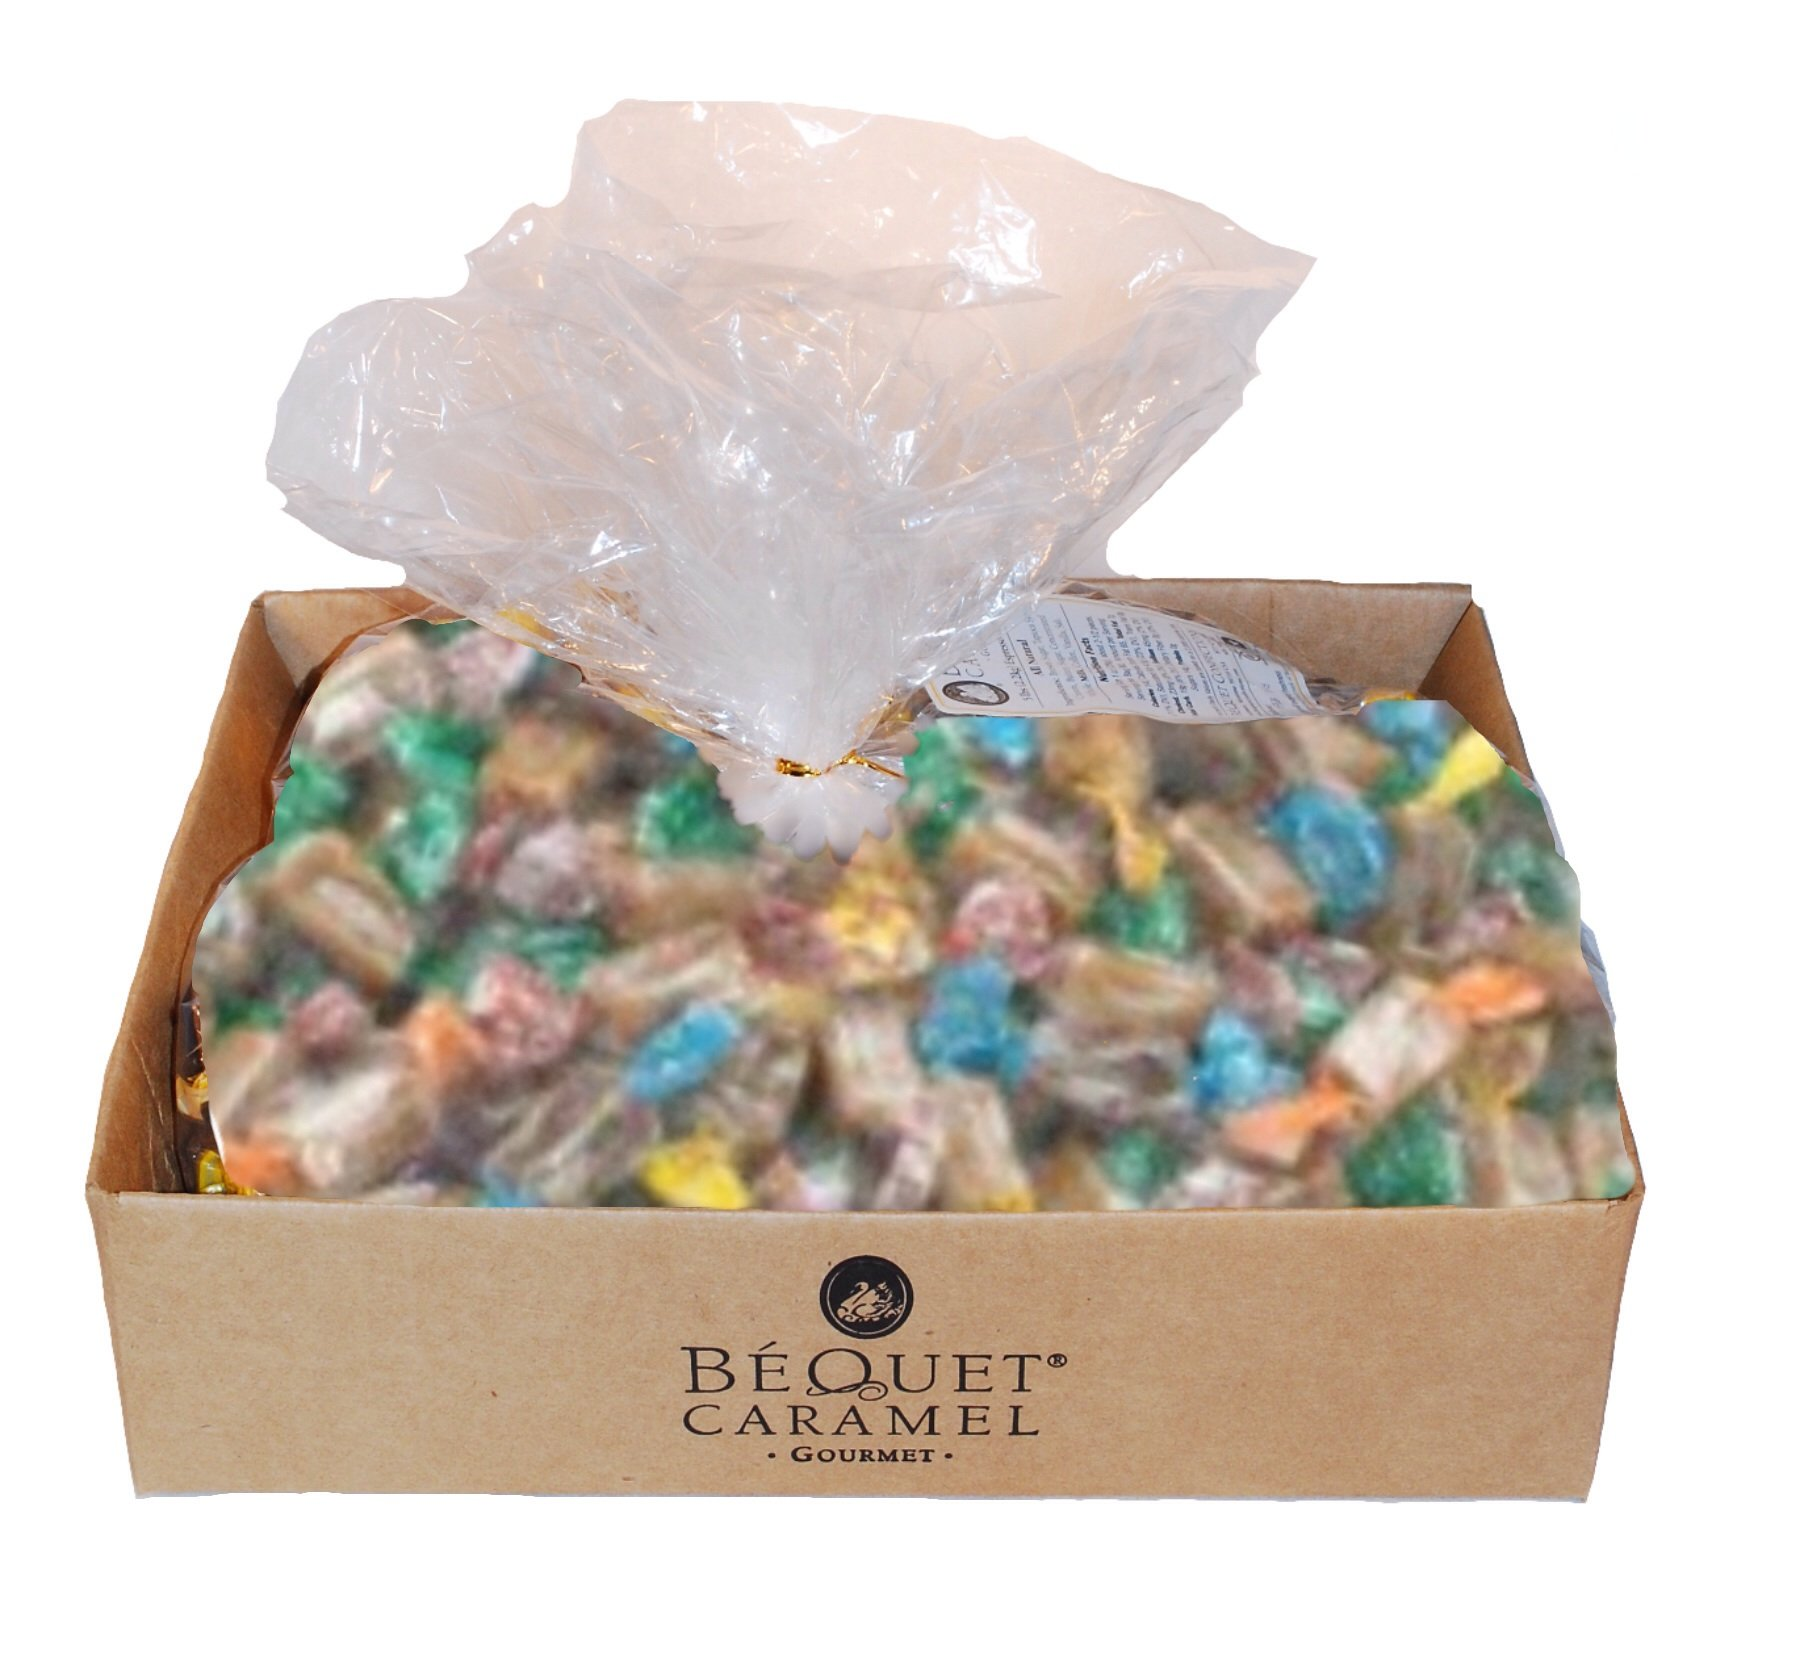 Bequet Gourmet Assorted Caramel 5lb bag (Assorted, 5lb bag)